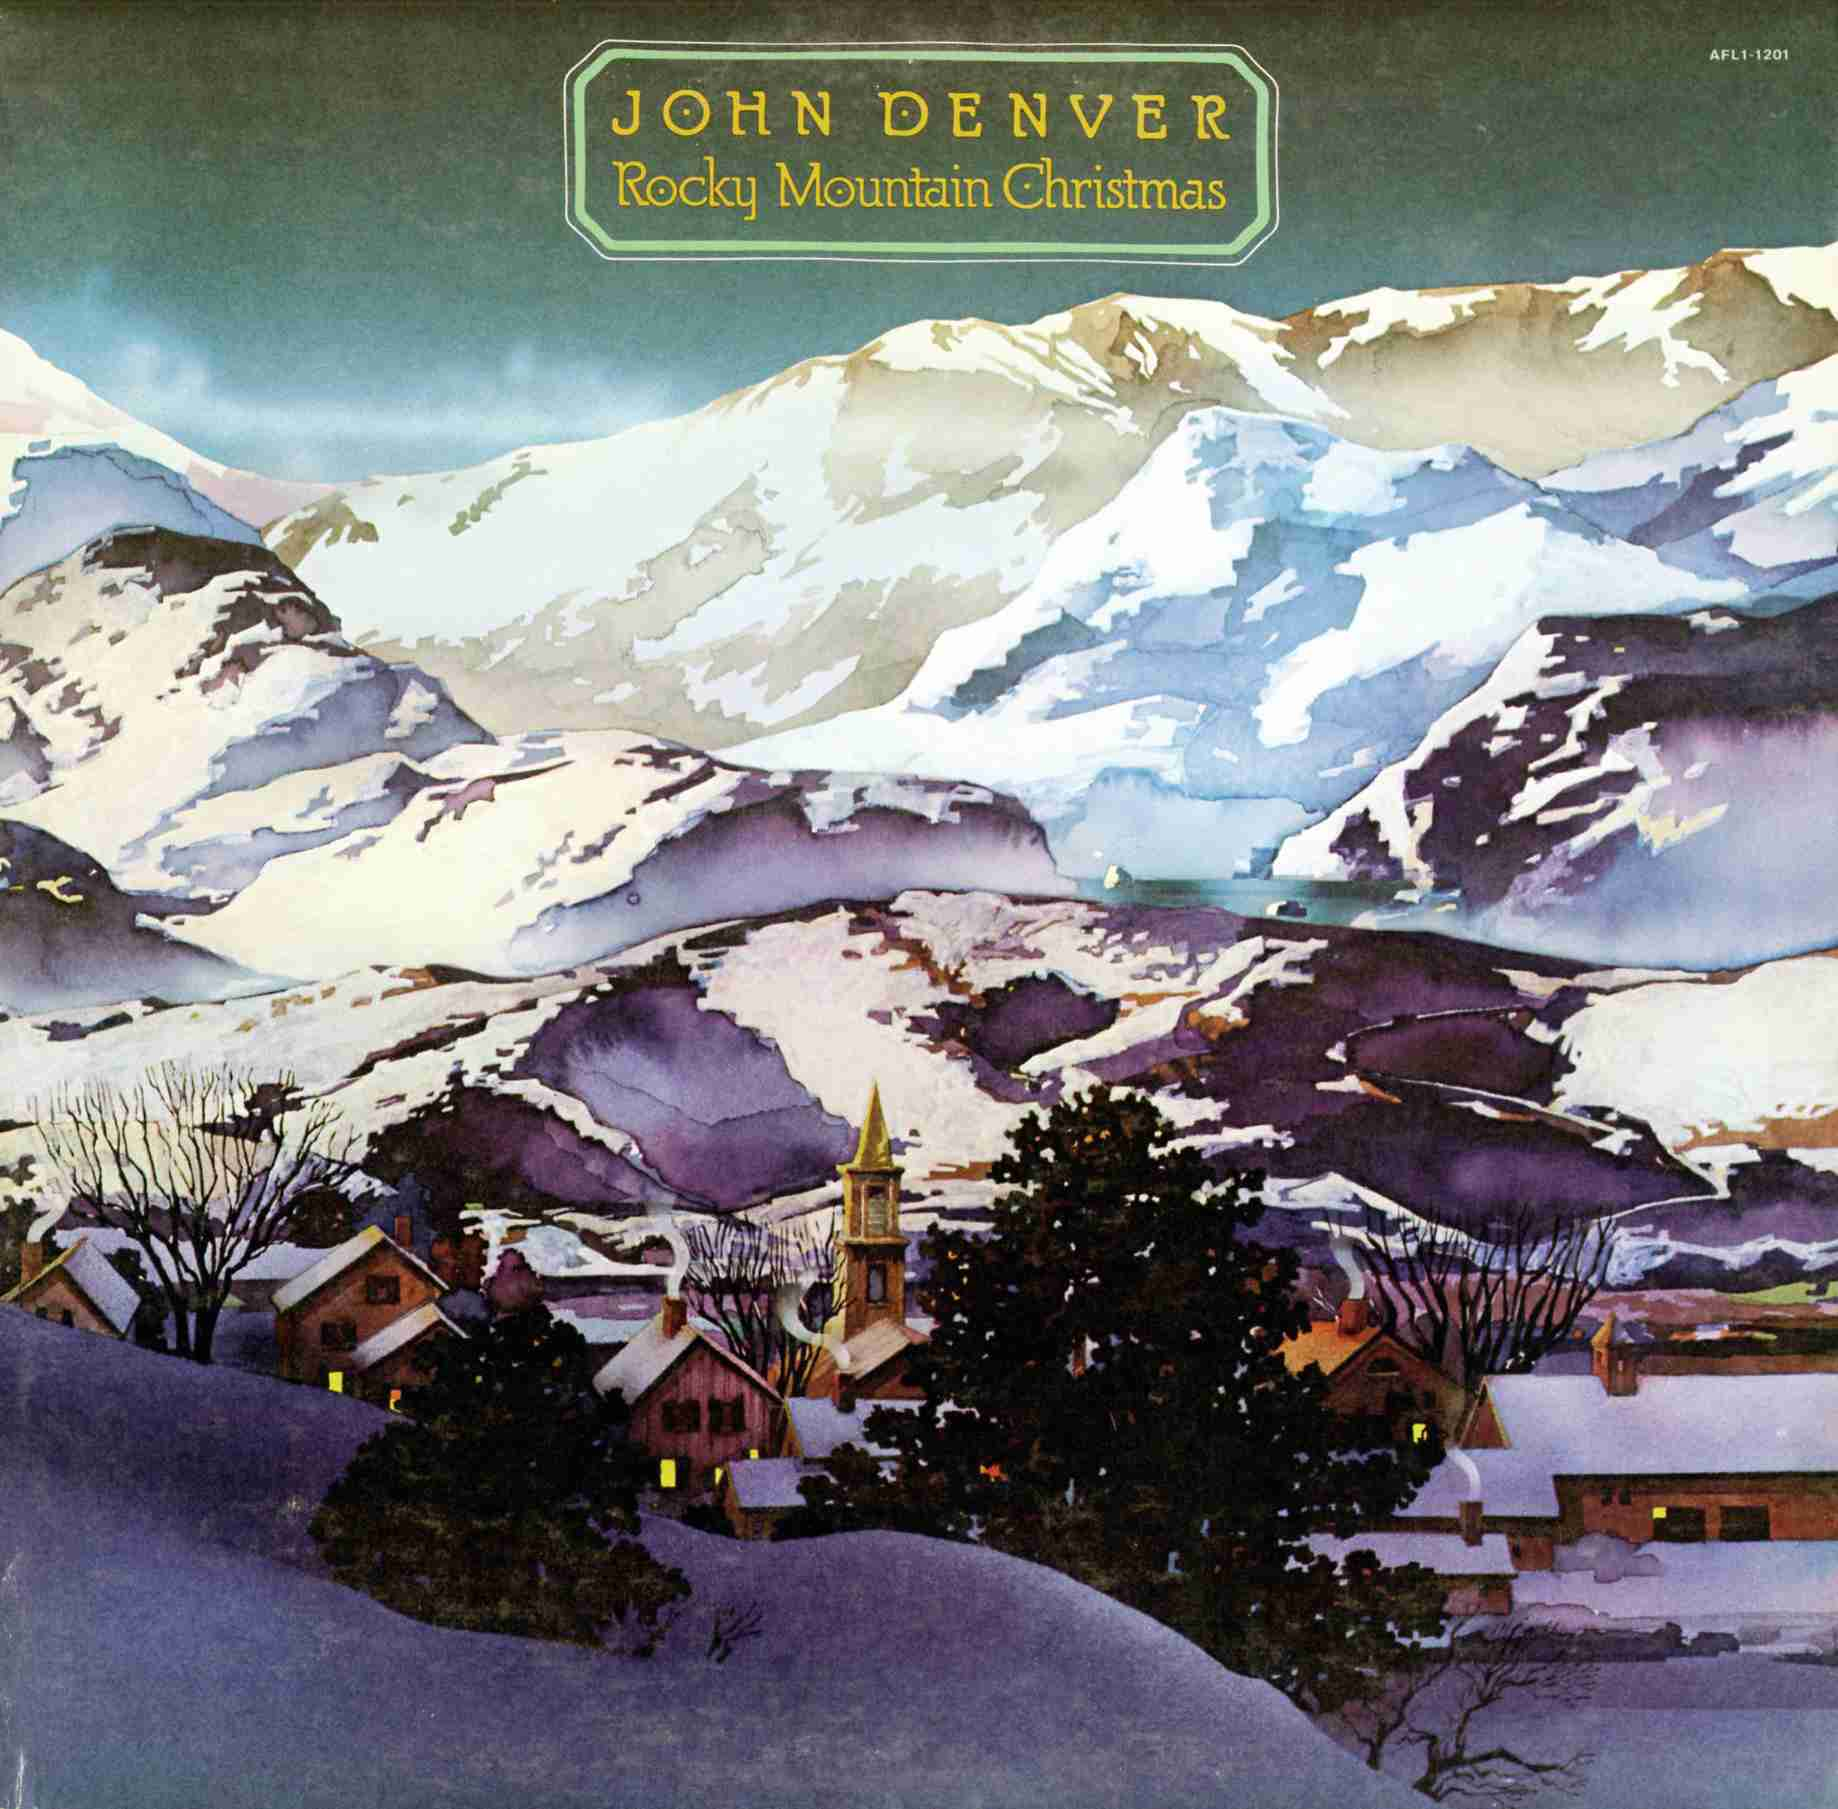 john denver a rocky mountain christmas 1975 - Best Christmas Albums Of All Time